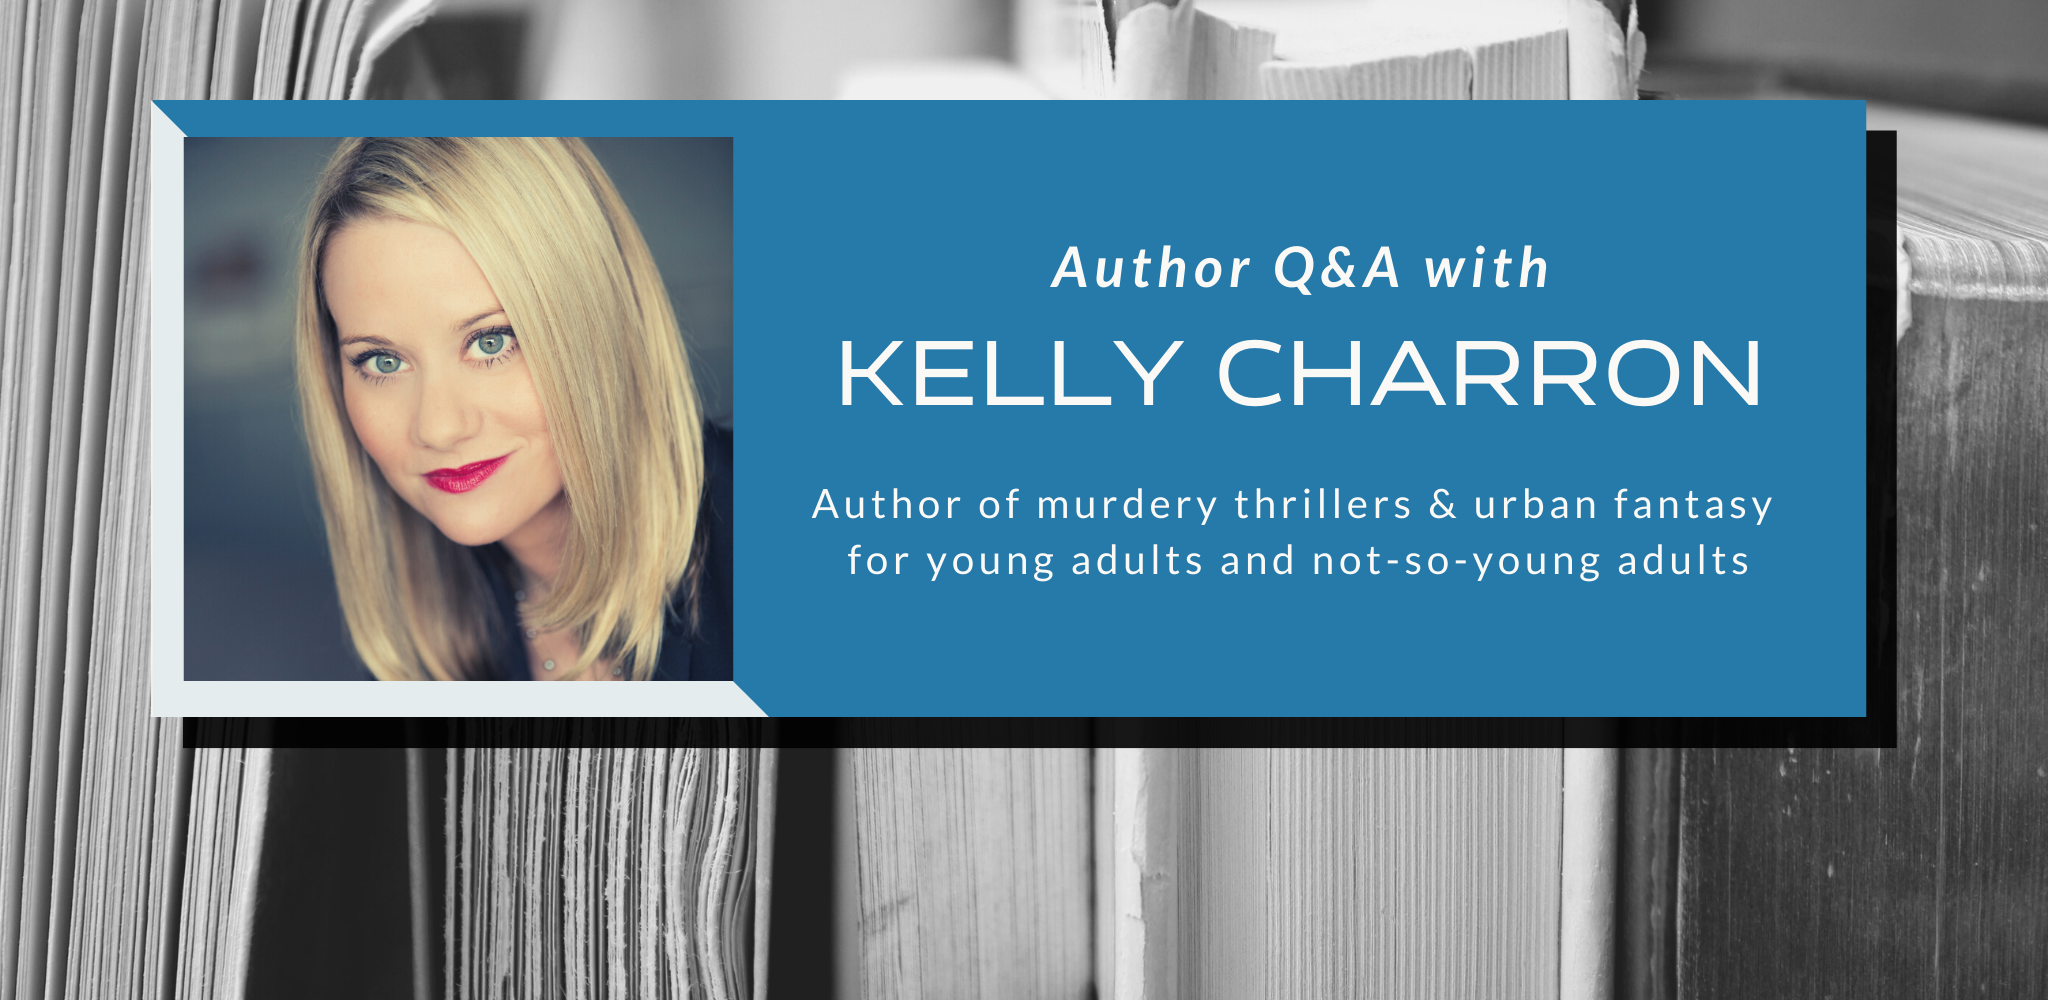 Q&A with Kelly Charron